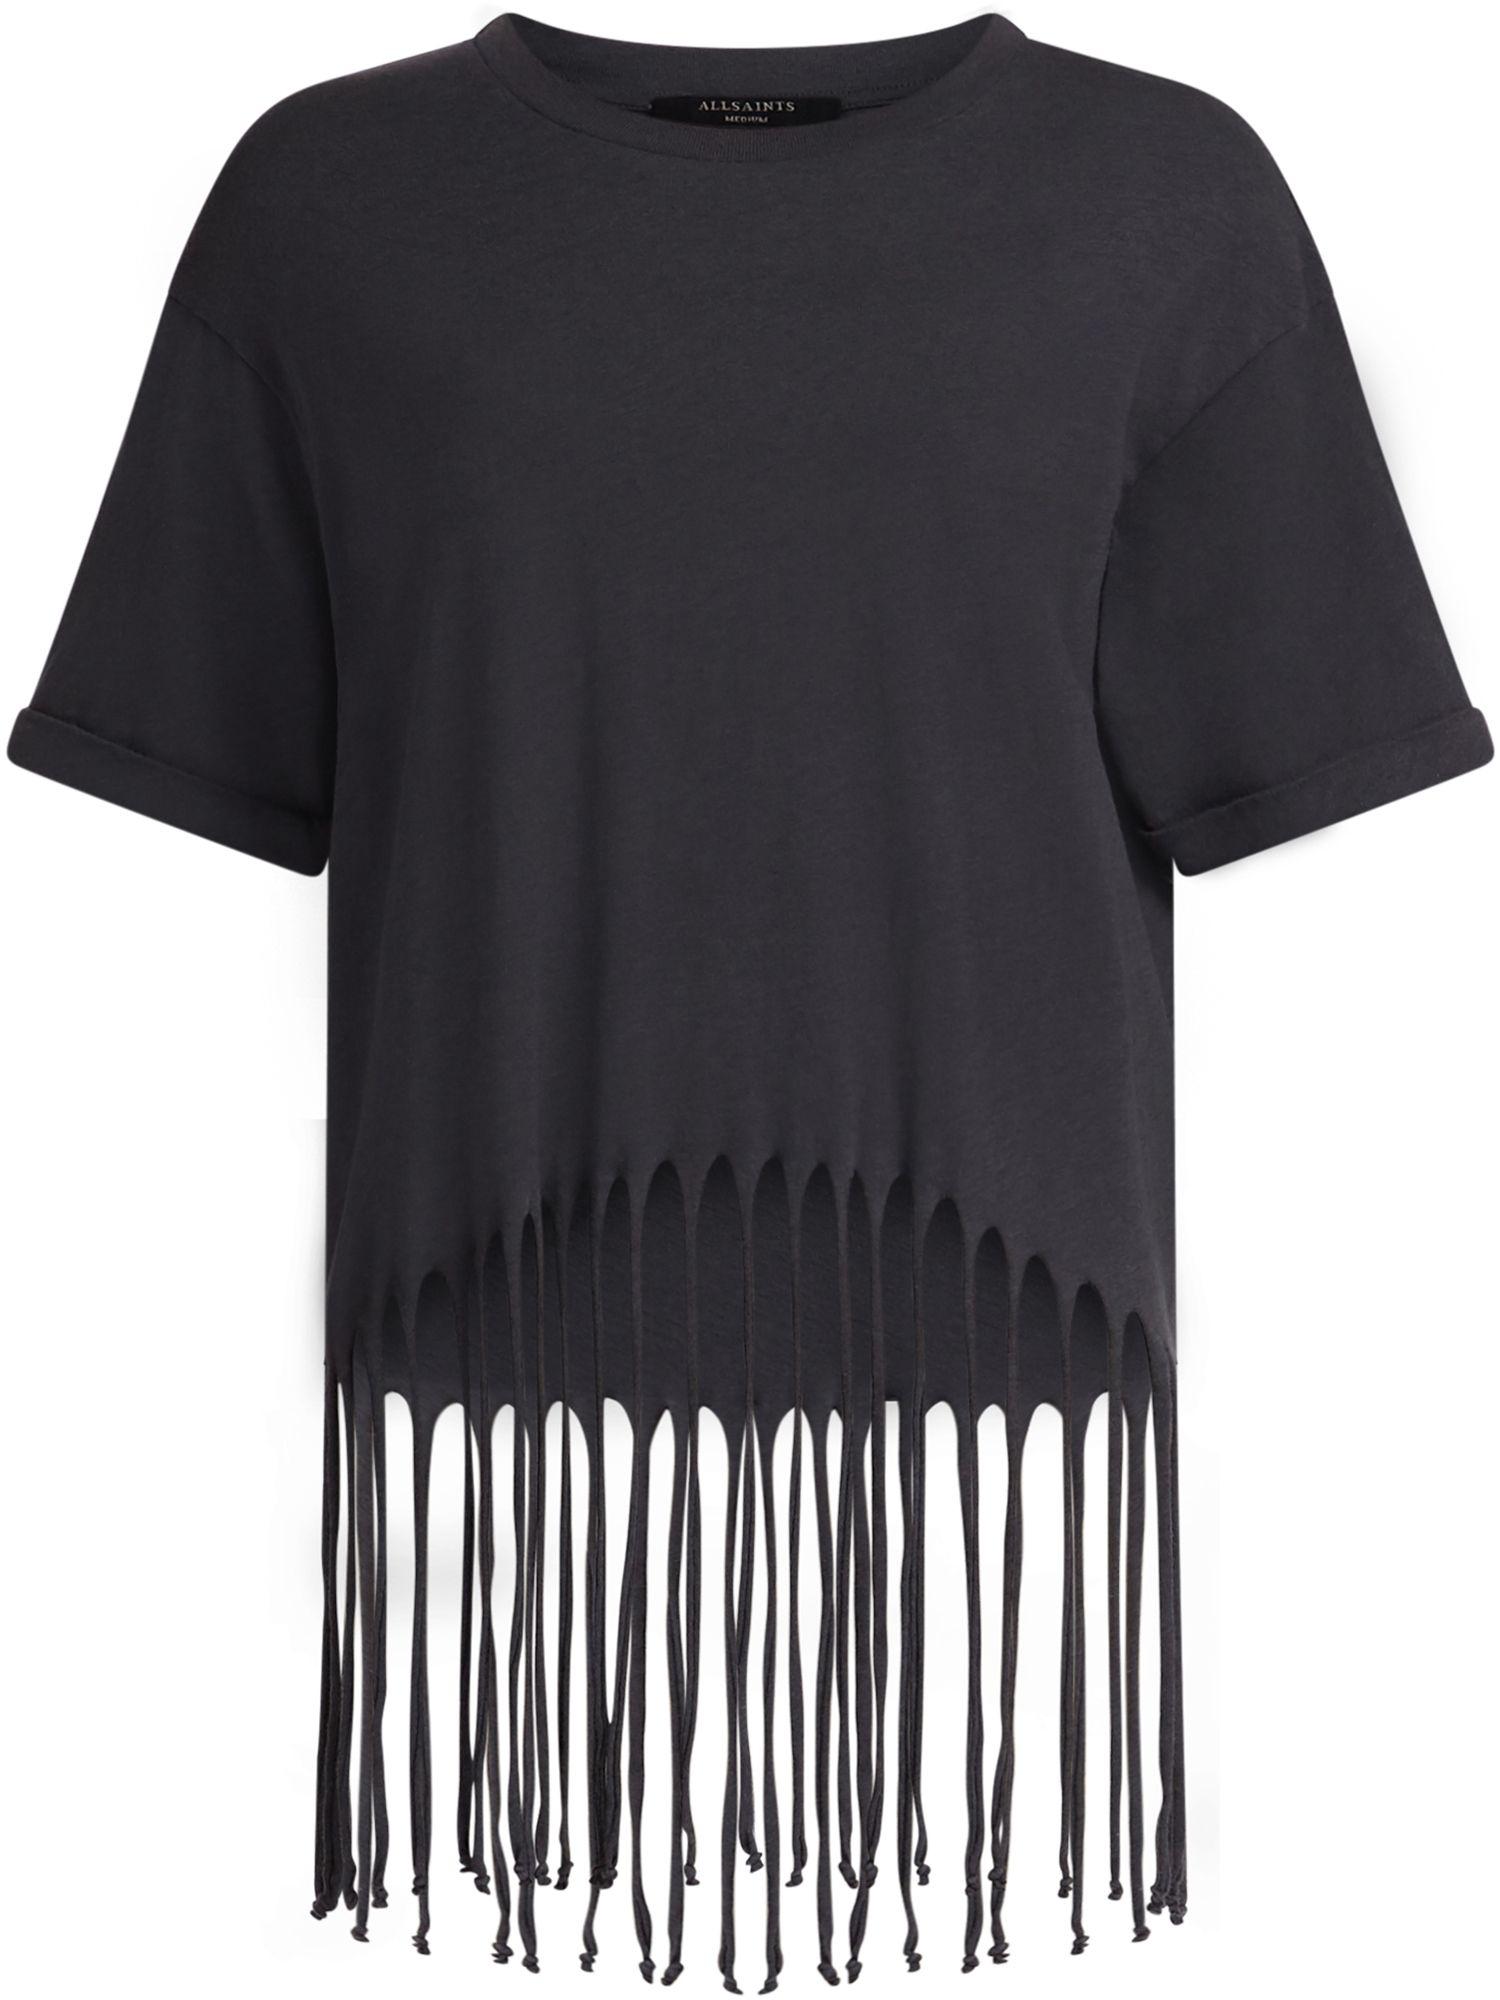 Tami Tee by All Saints